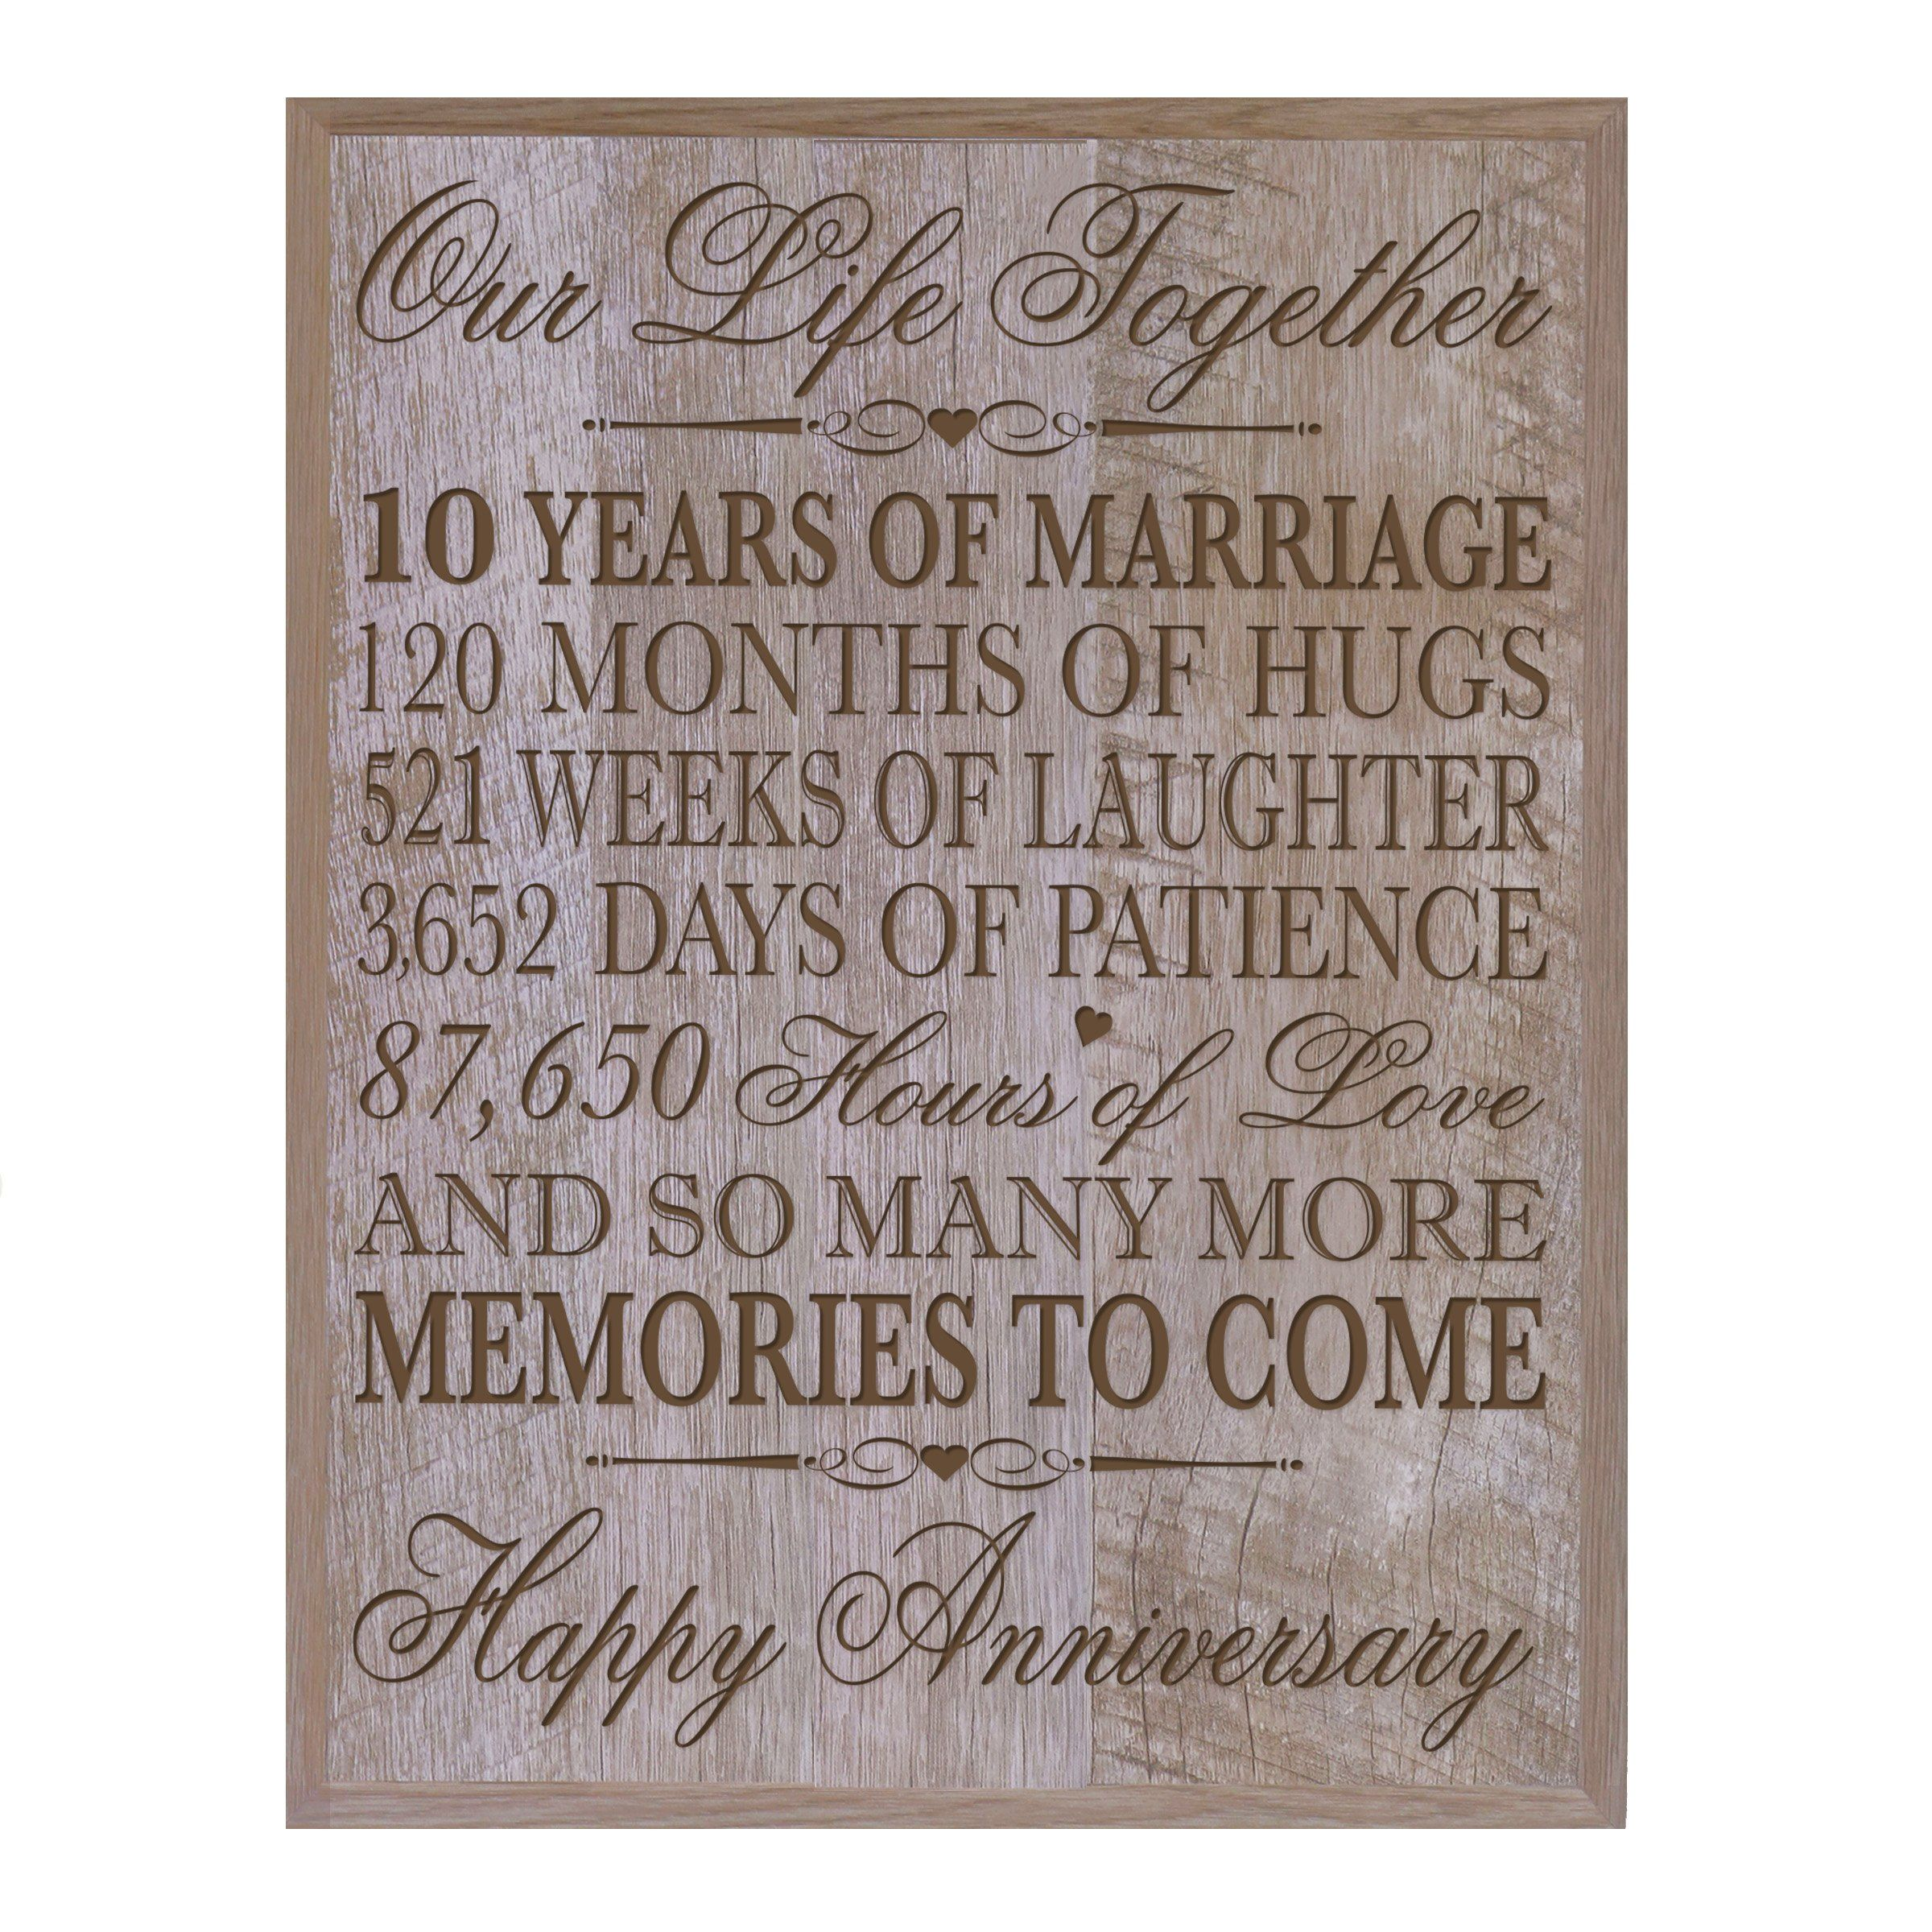 10th Wedding Anniversary Wall Plaque Gifts For Couple Her10th